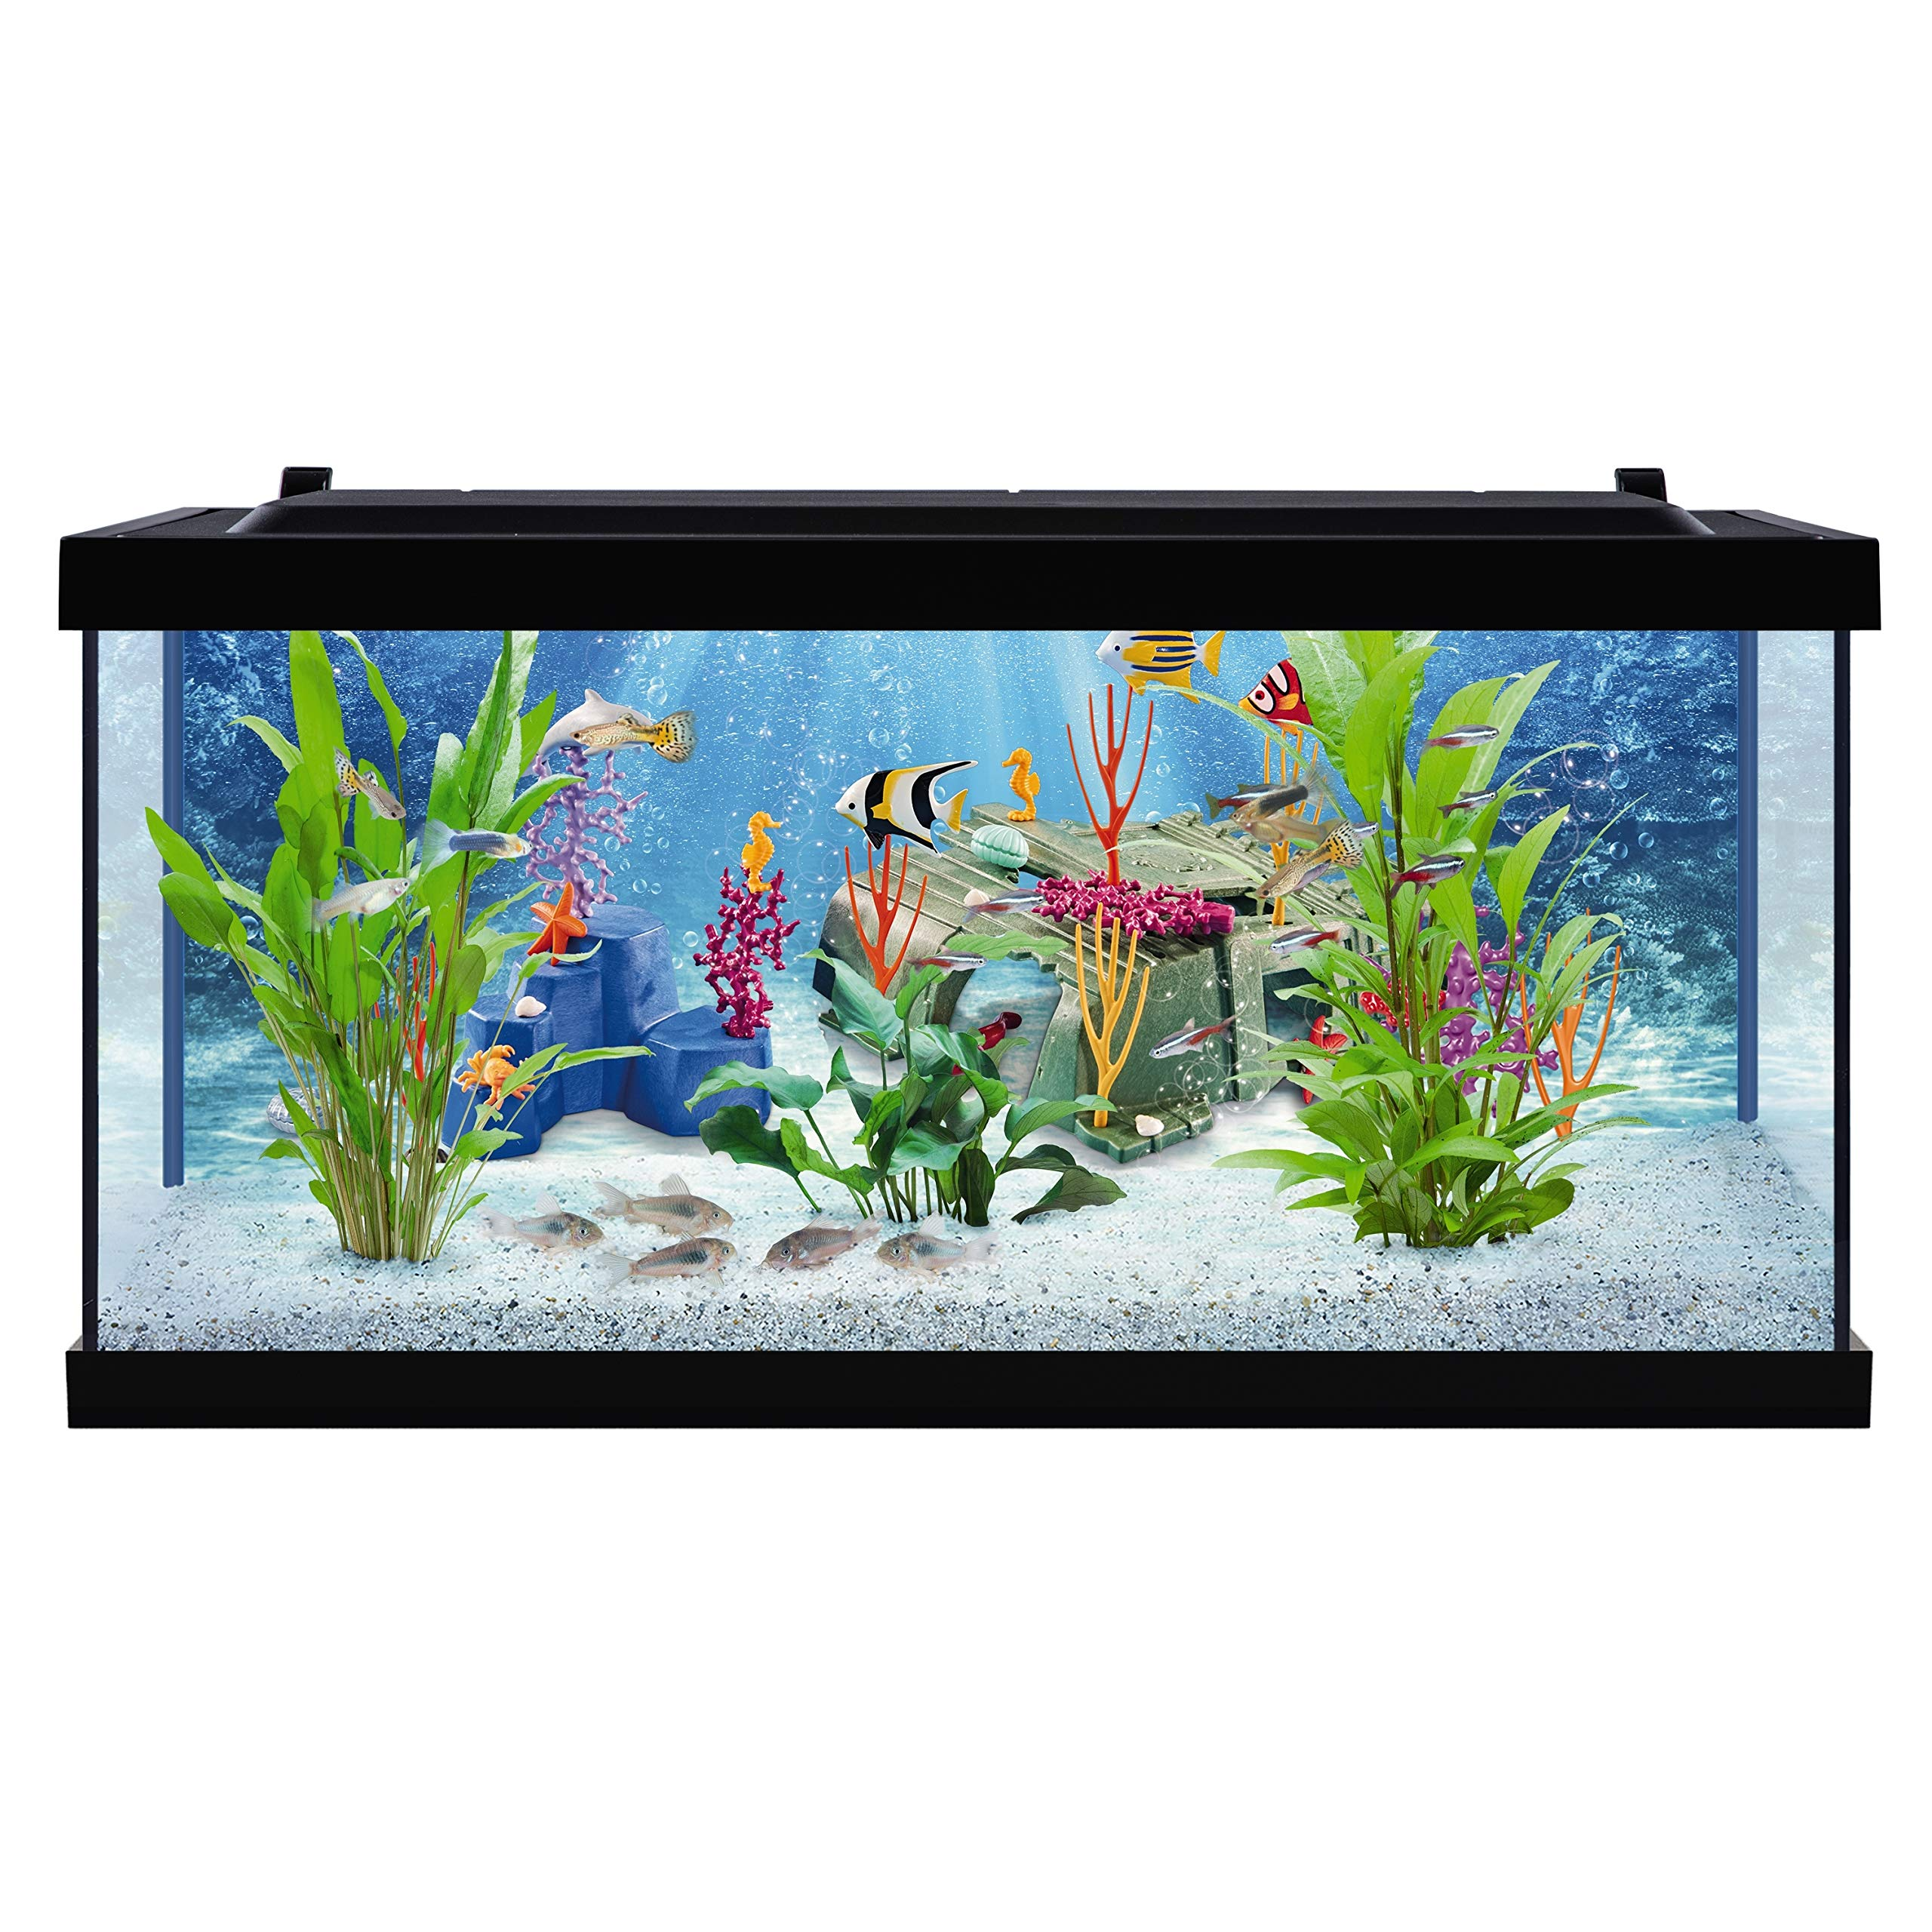 Tetra PLAYMOBIL Explore Your Aquarium 10 Gallon Kit by Tetra